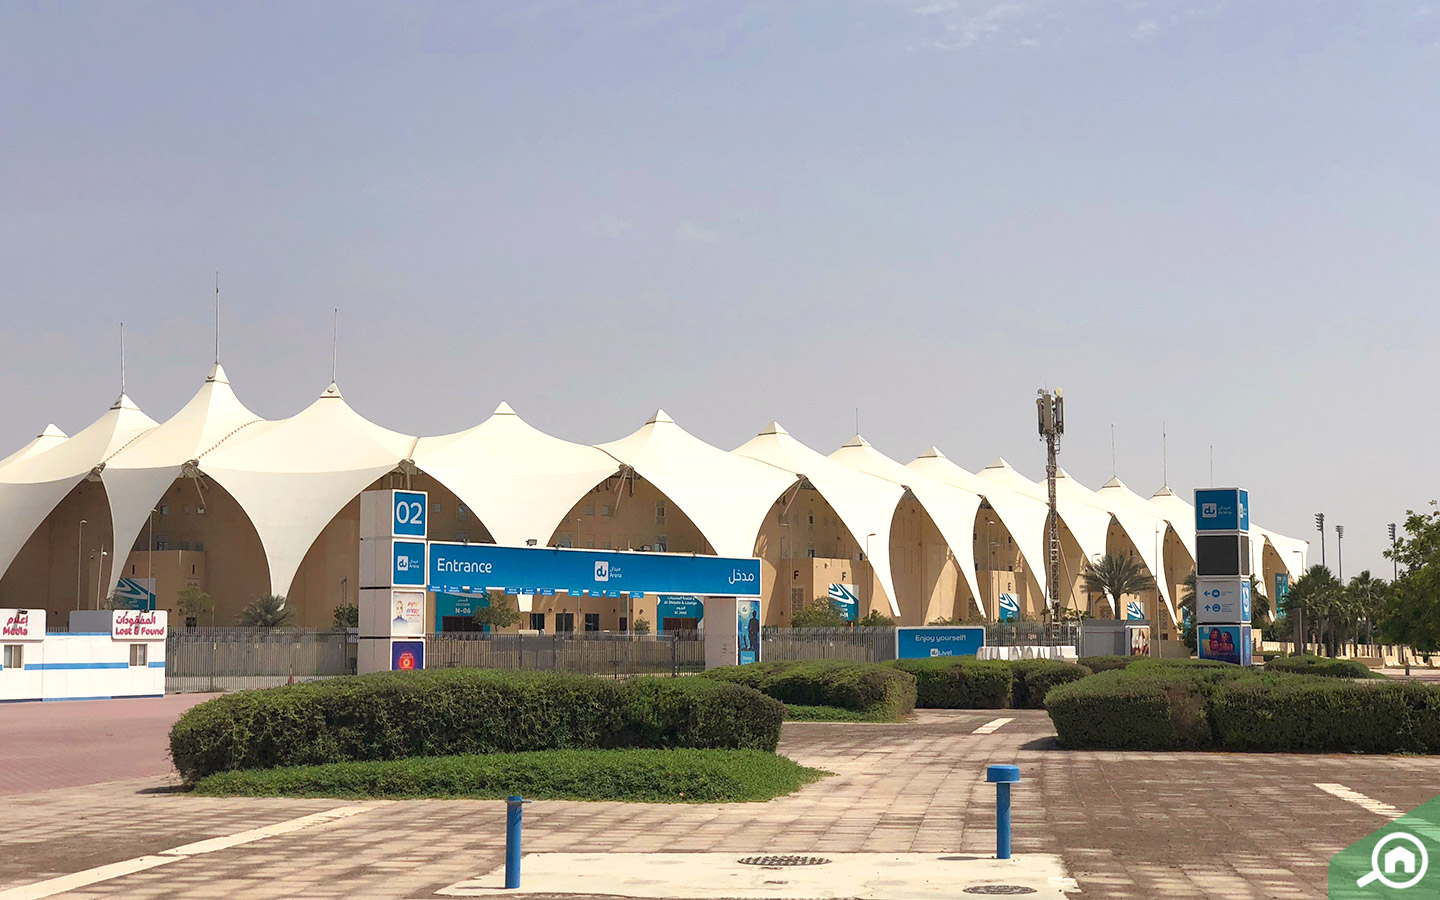 Yas Island gets crowded when there is an event at the Du Arena